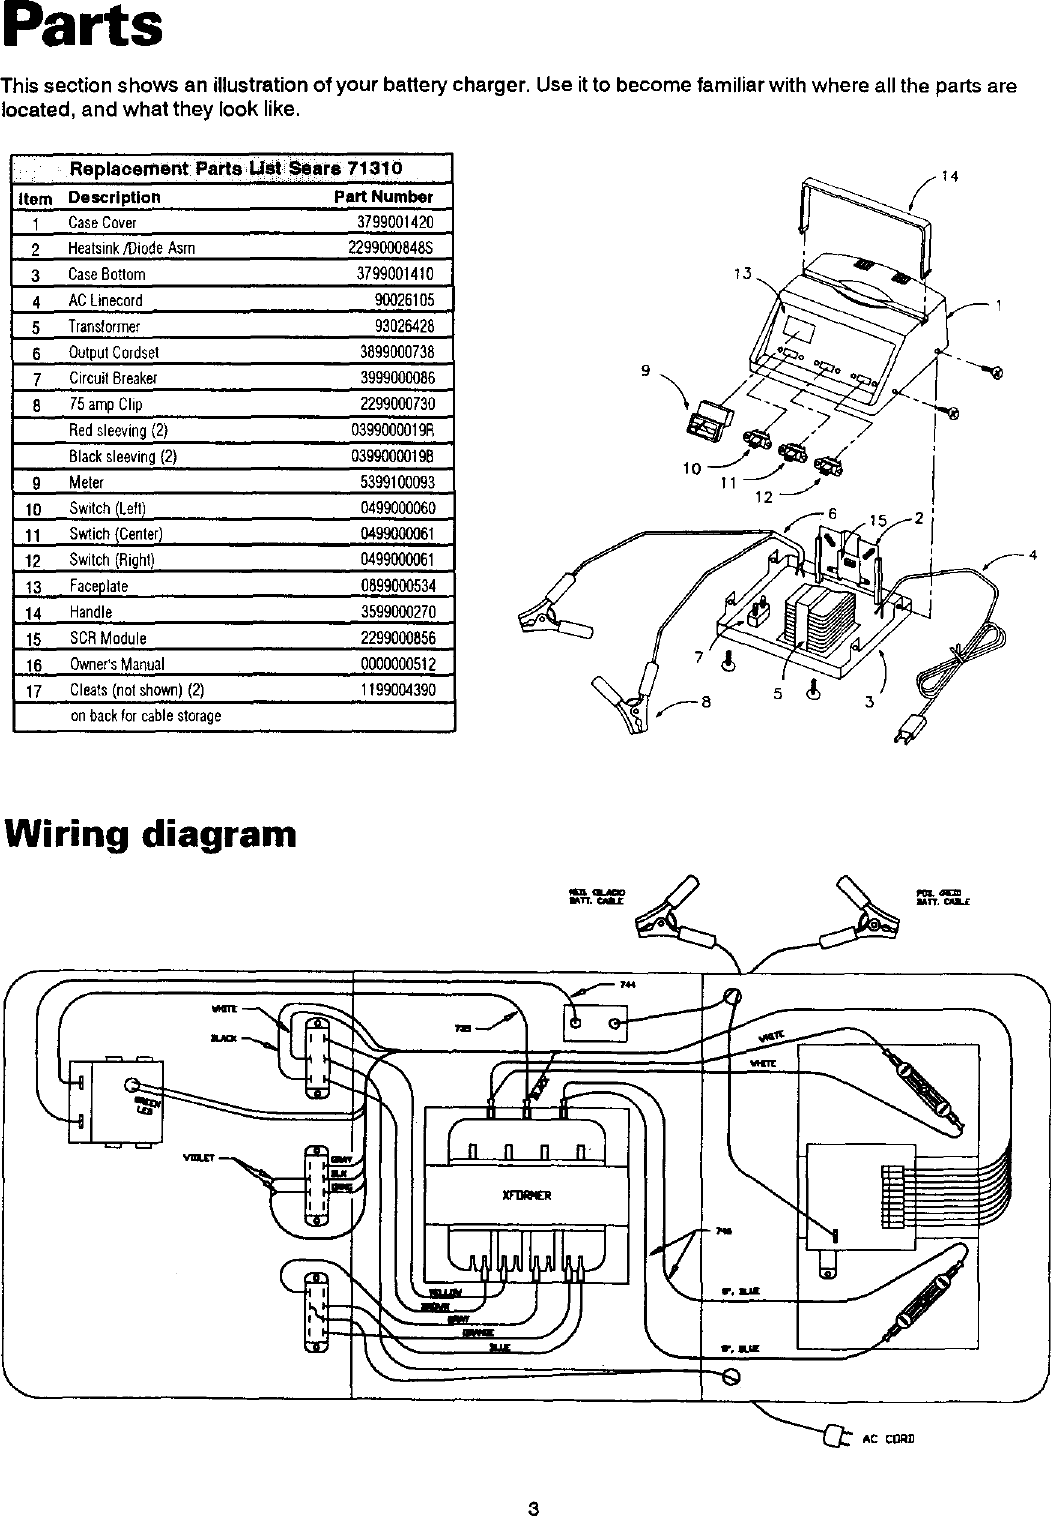 Diehard 20071310 User Manual Battery Charger Manuals And Guides L0305324 Transformer Wiring Diagram Page 4 Of 12